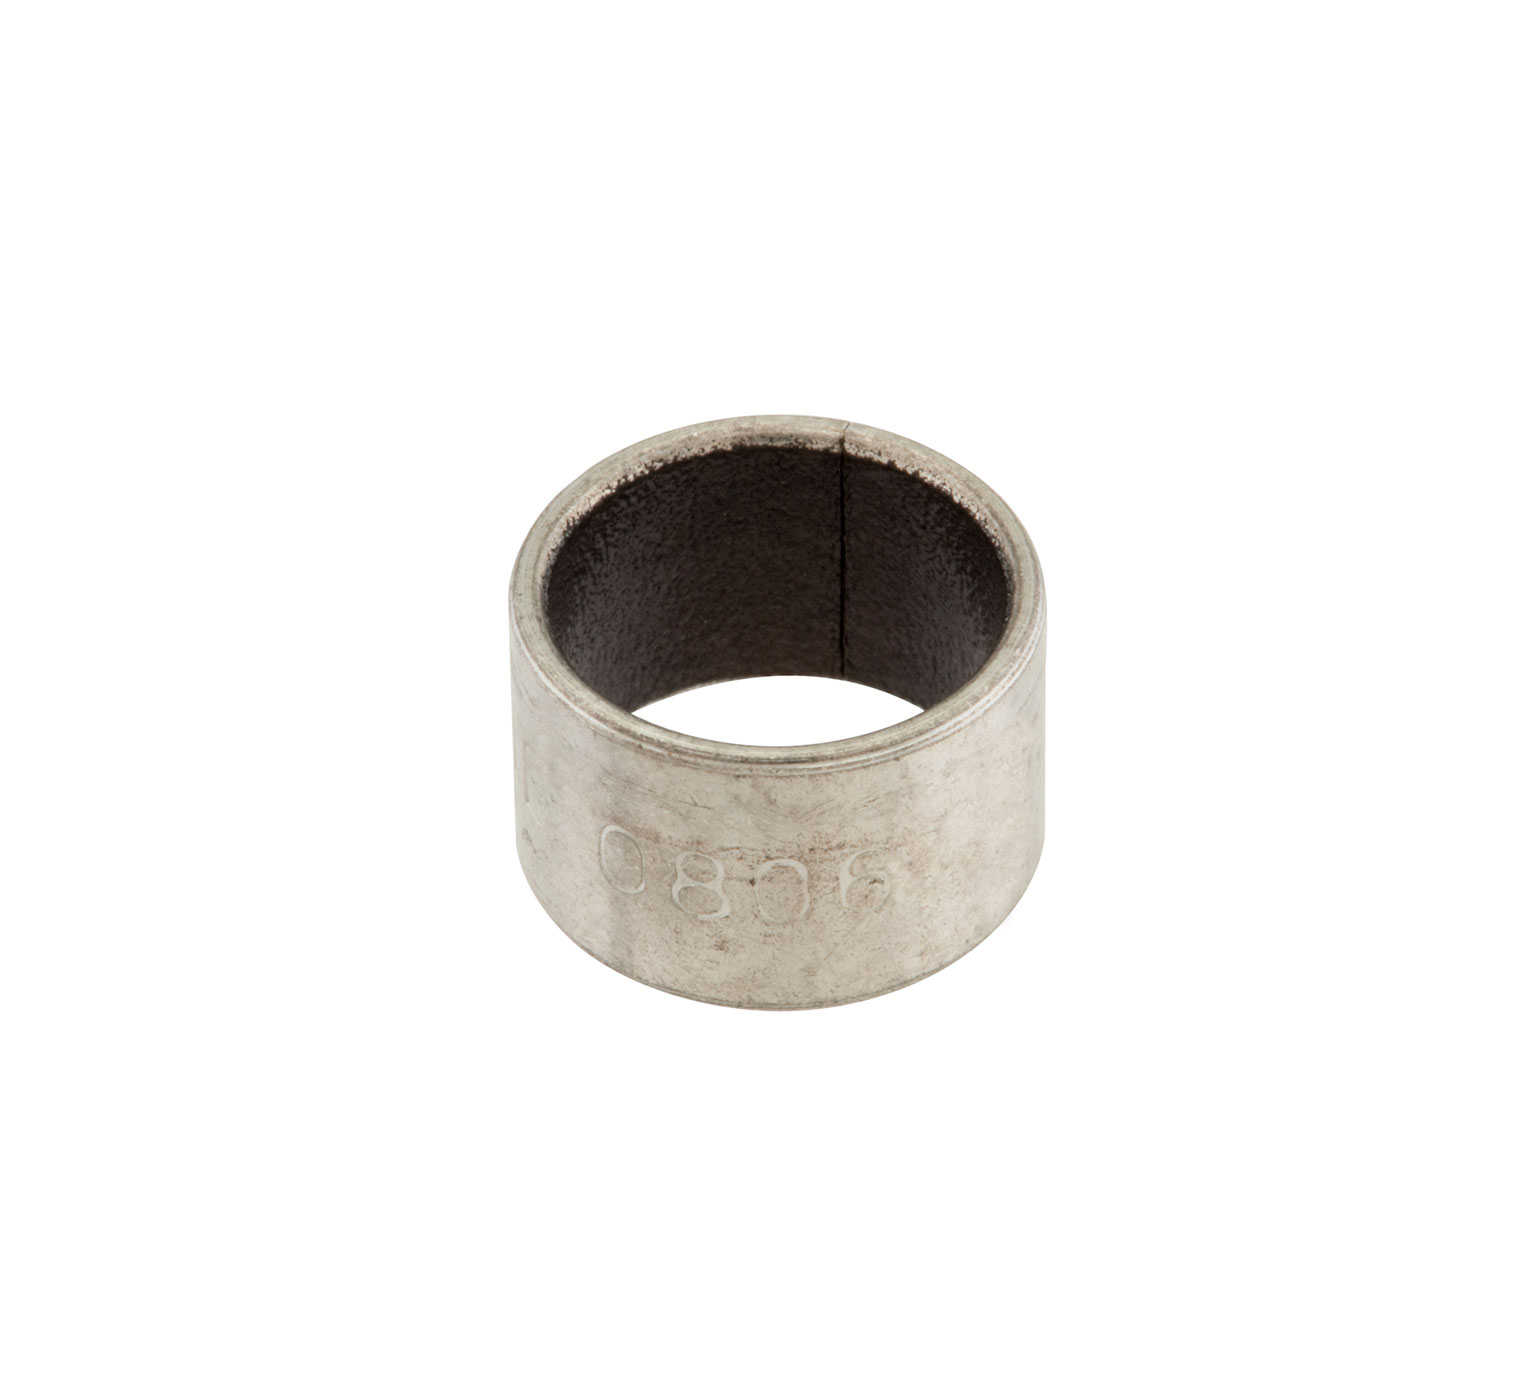 64173 Tin Bushing - 0.594 OD x 0.502 x 0.375 in alt 1